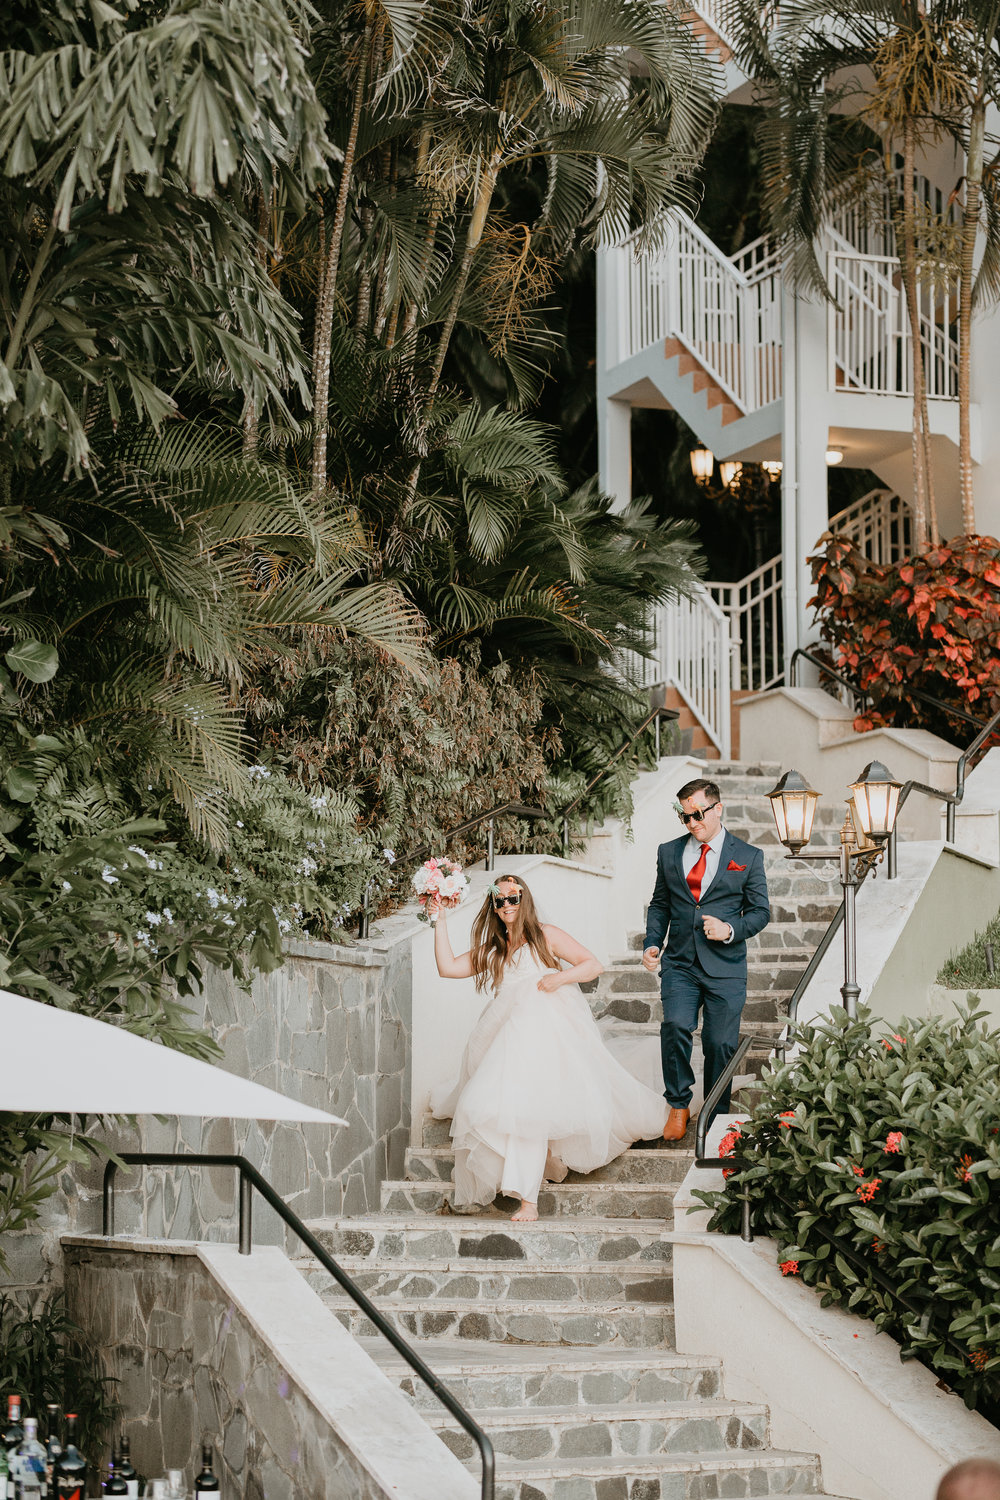 nicole-daacke-photography-destination-wedding-in-st-lucia-sandals-la-toc-intimate-island-wedding-carribean-elopement-photographer-chill-island-wedding-127.jpg